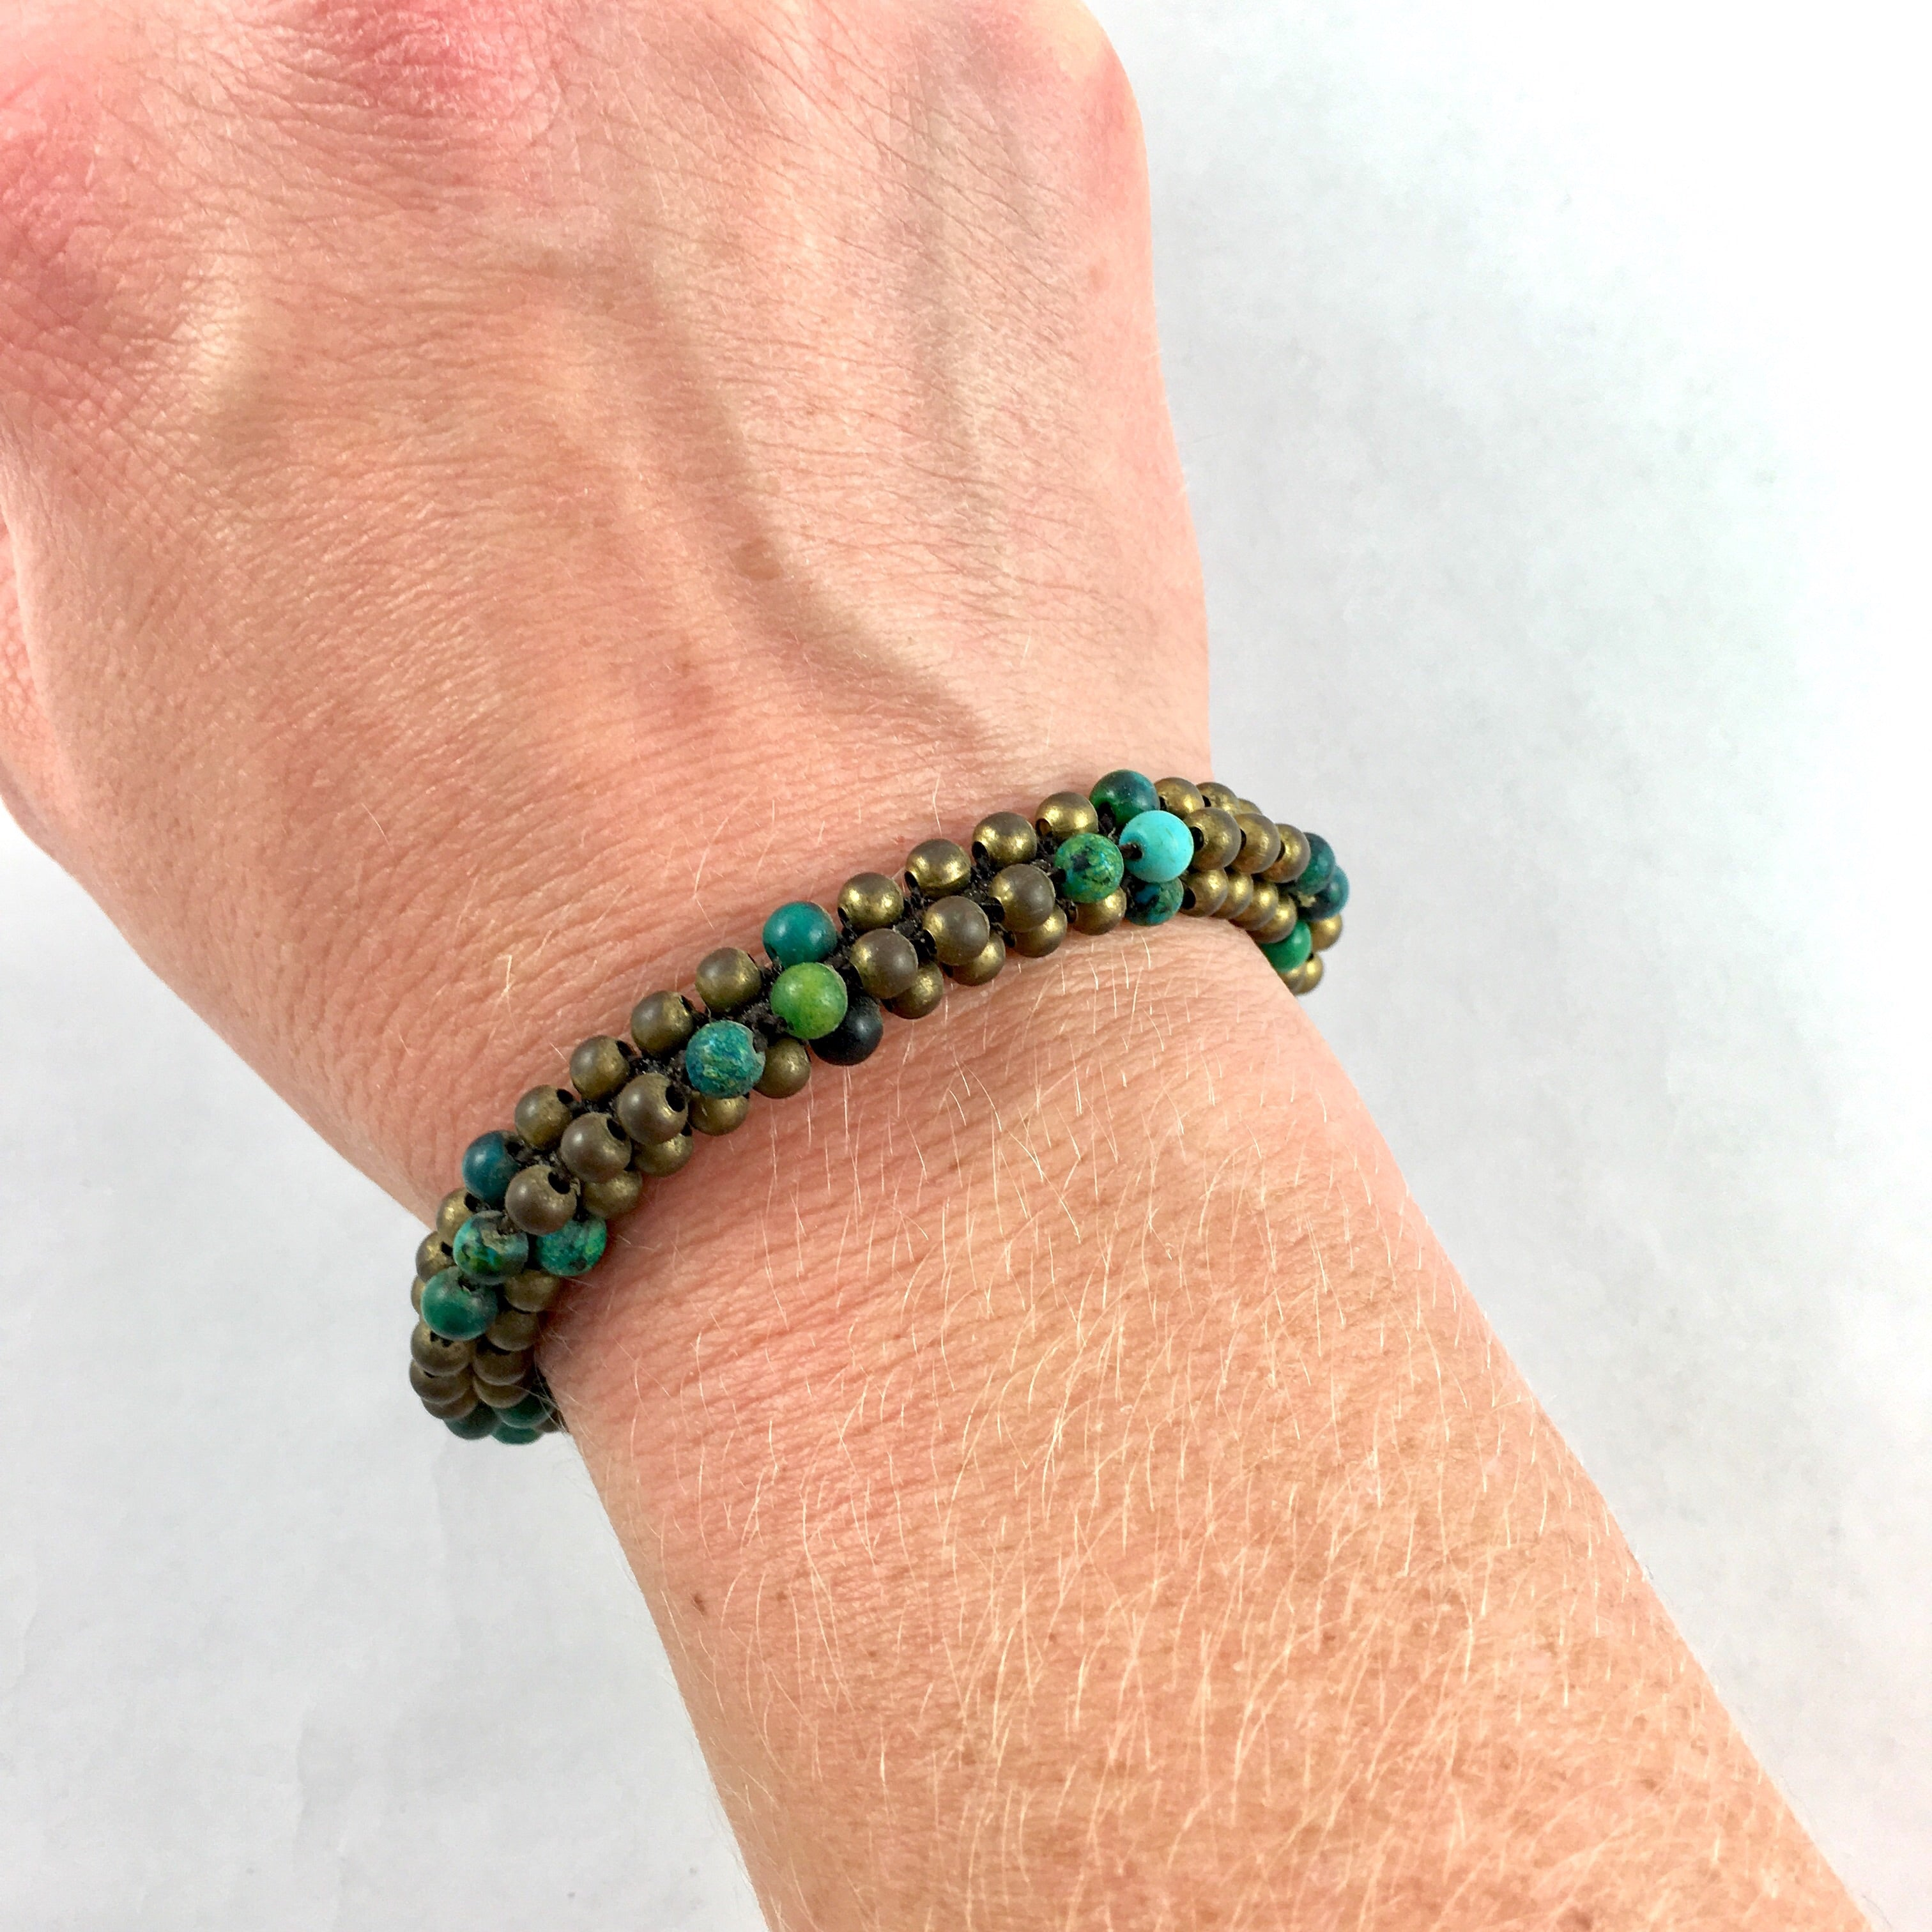 Bracelet with Turquoise and Brass